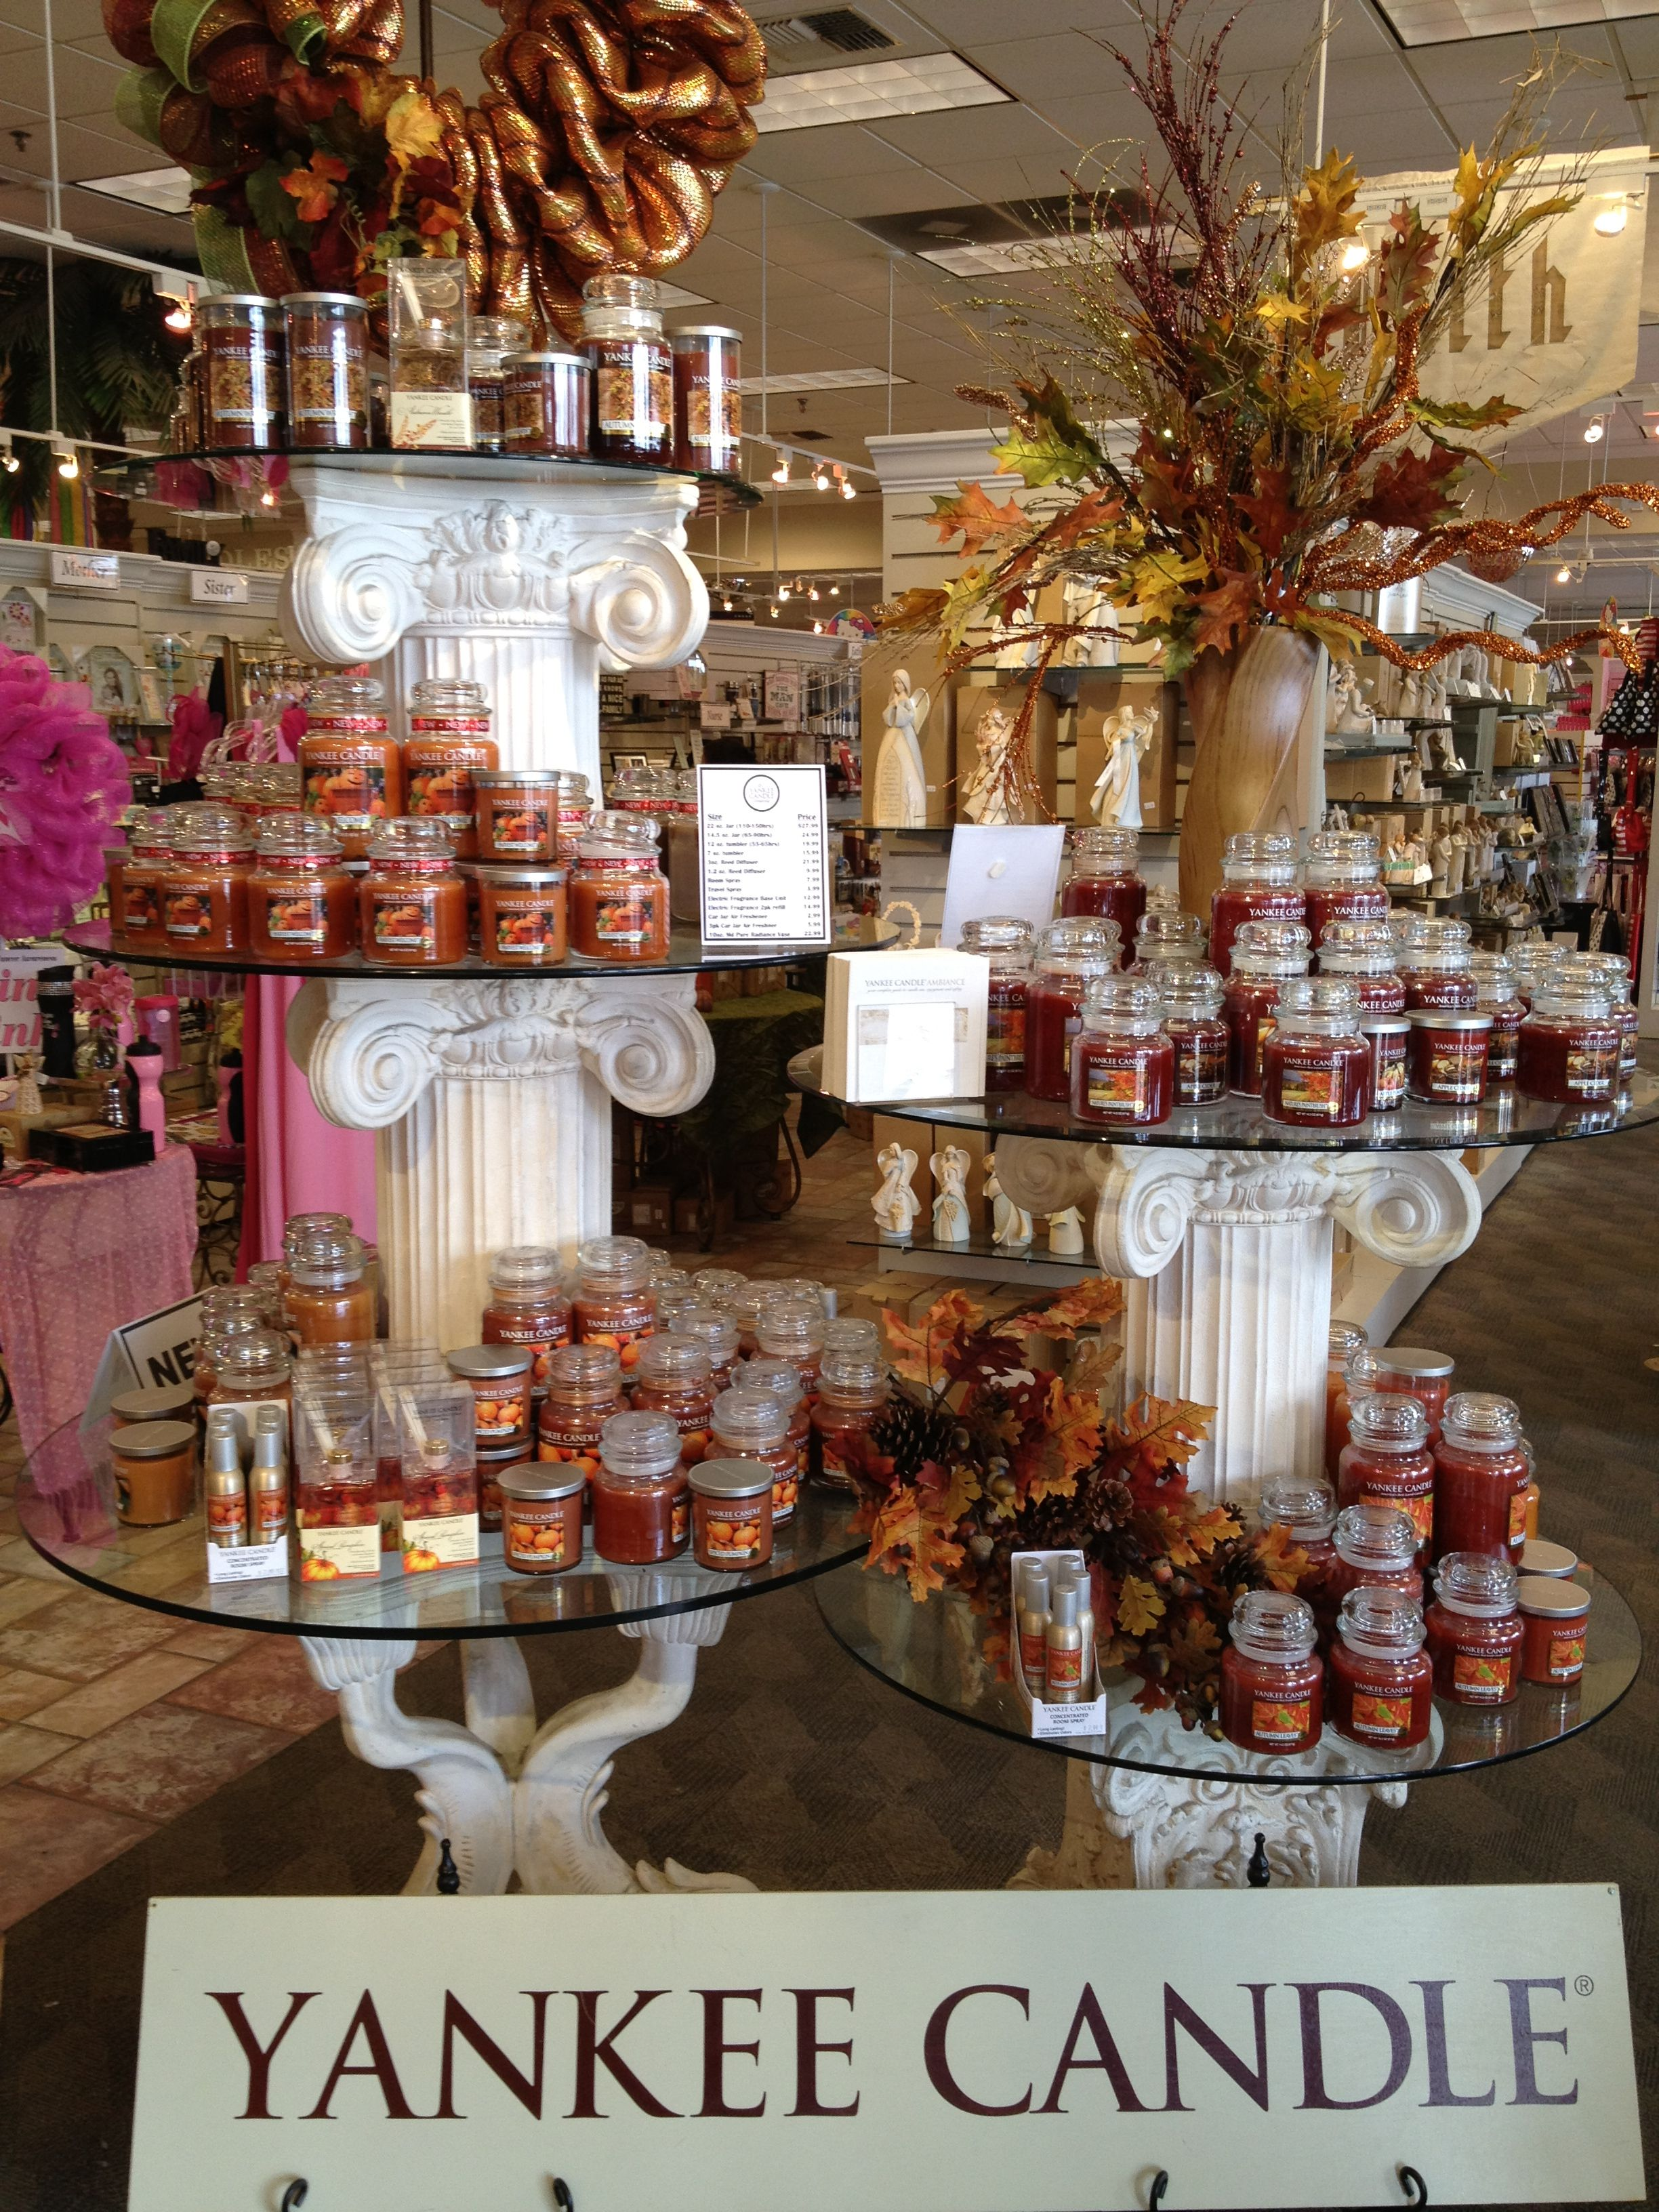 Quips N Quotes Yankee Candle Available  Quips 'n' Quotes Home Fragrance